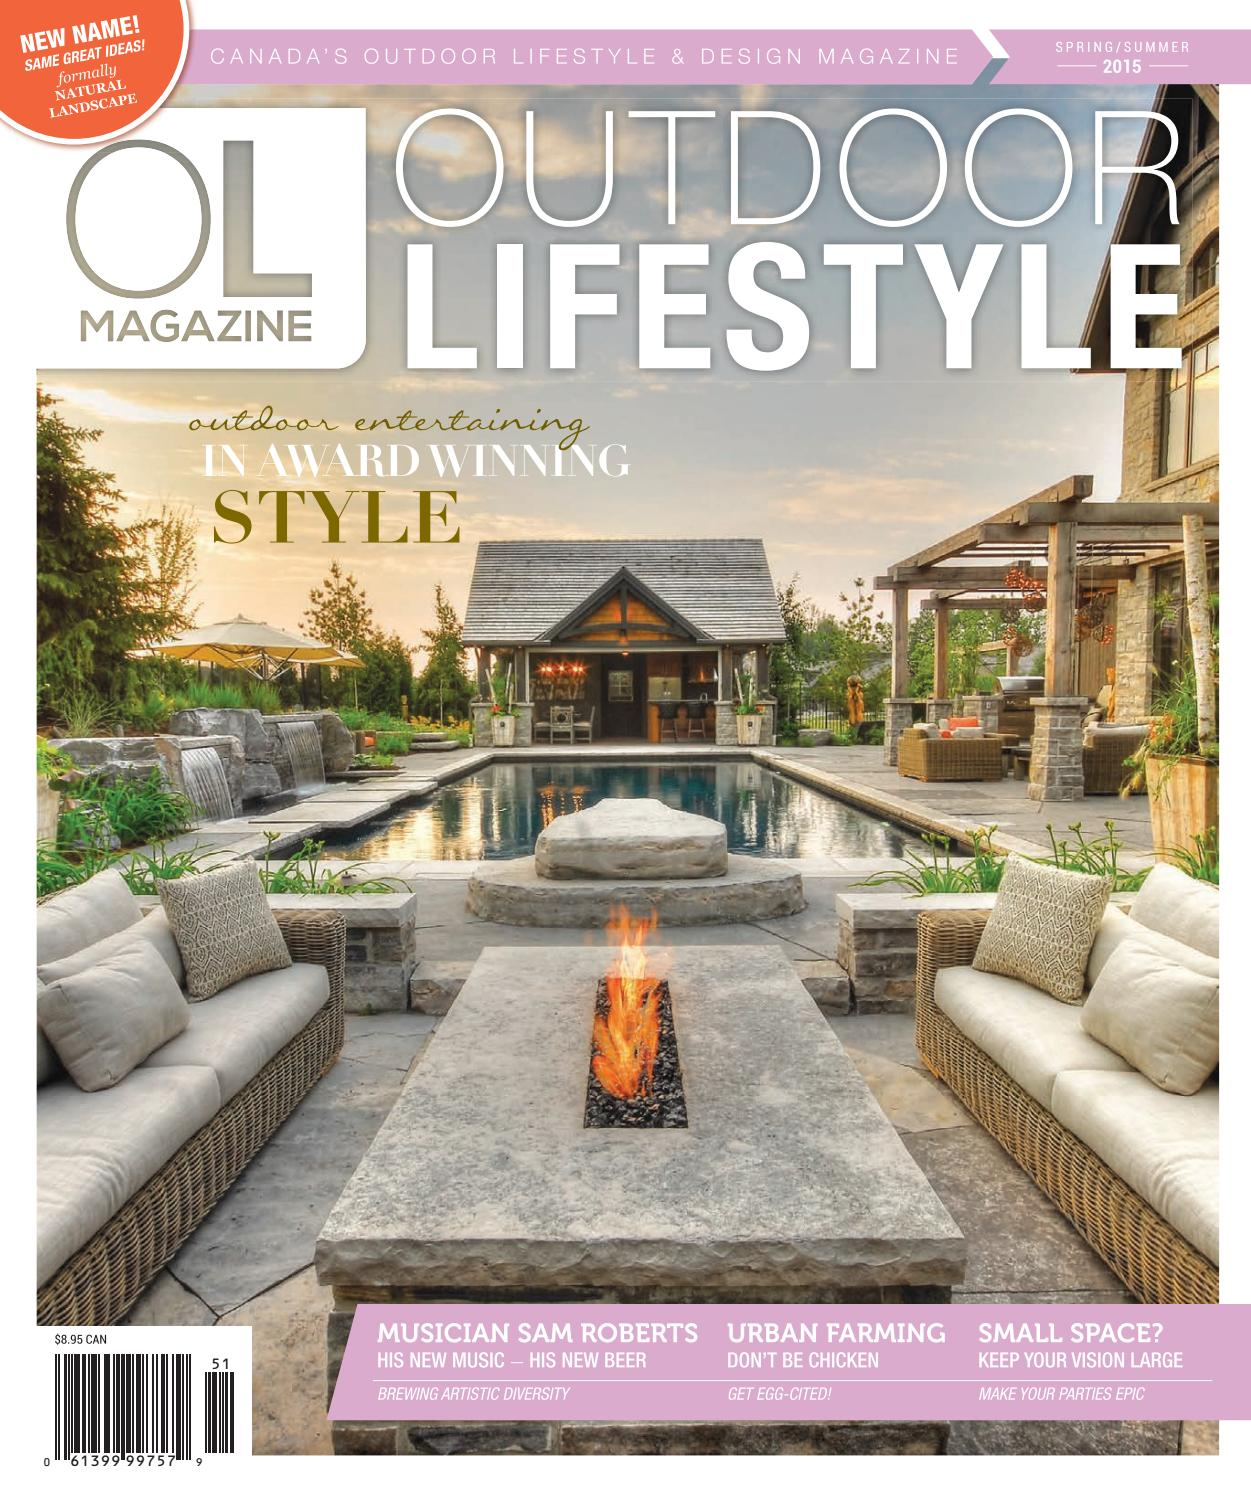 Outdoor lifestyle magazine spring summer 2015 by outdoor outdoor lifestyle magazine spring summer 2015 by outdoor lifestyle magazine issuu fandeluxe Gallery